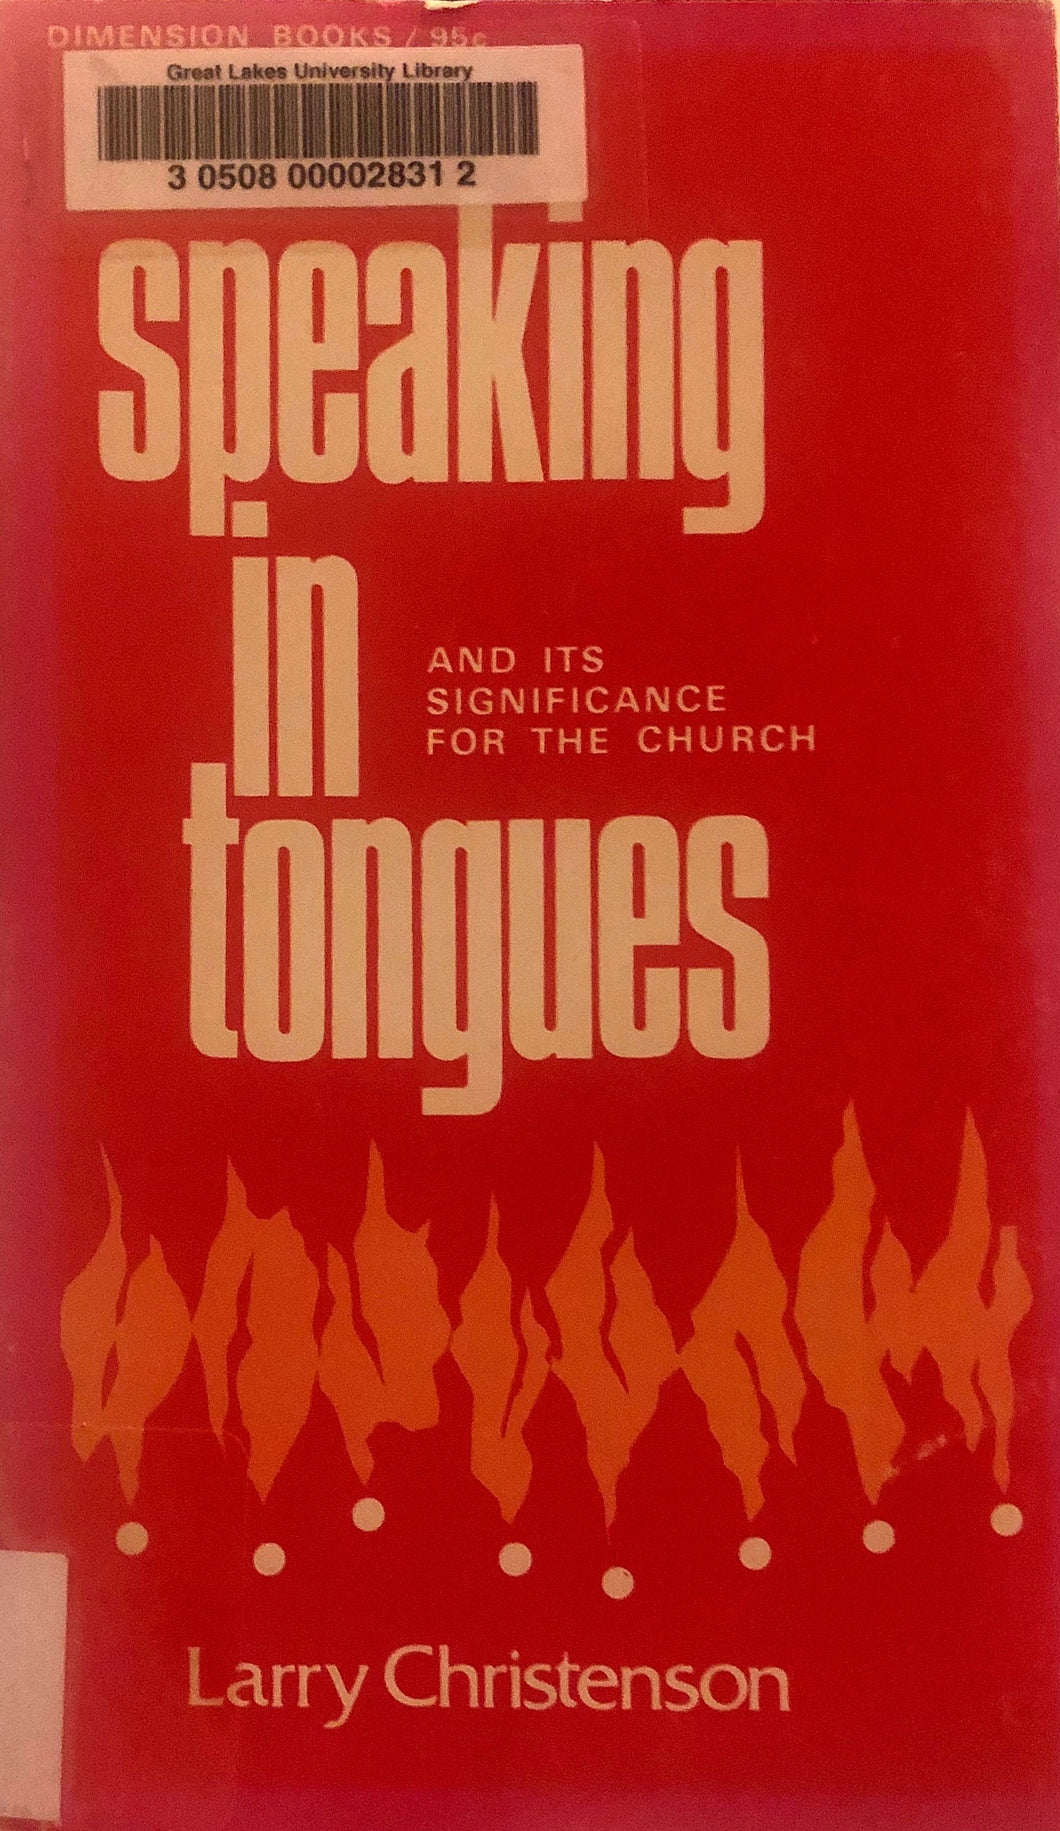 Speaking in Tongues by Larry Christenson